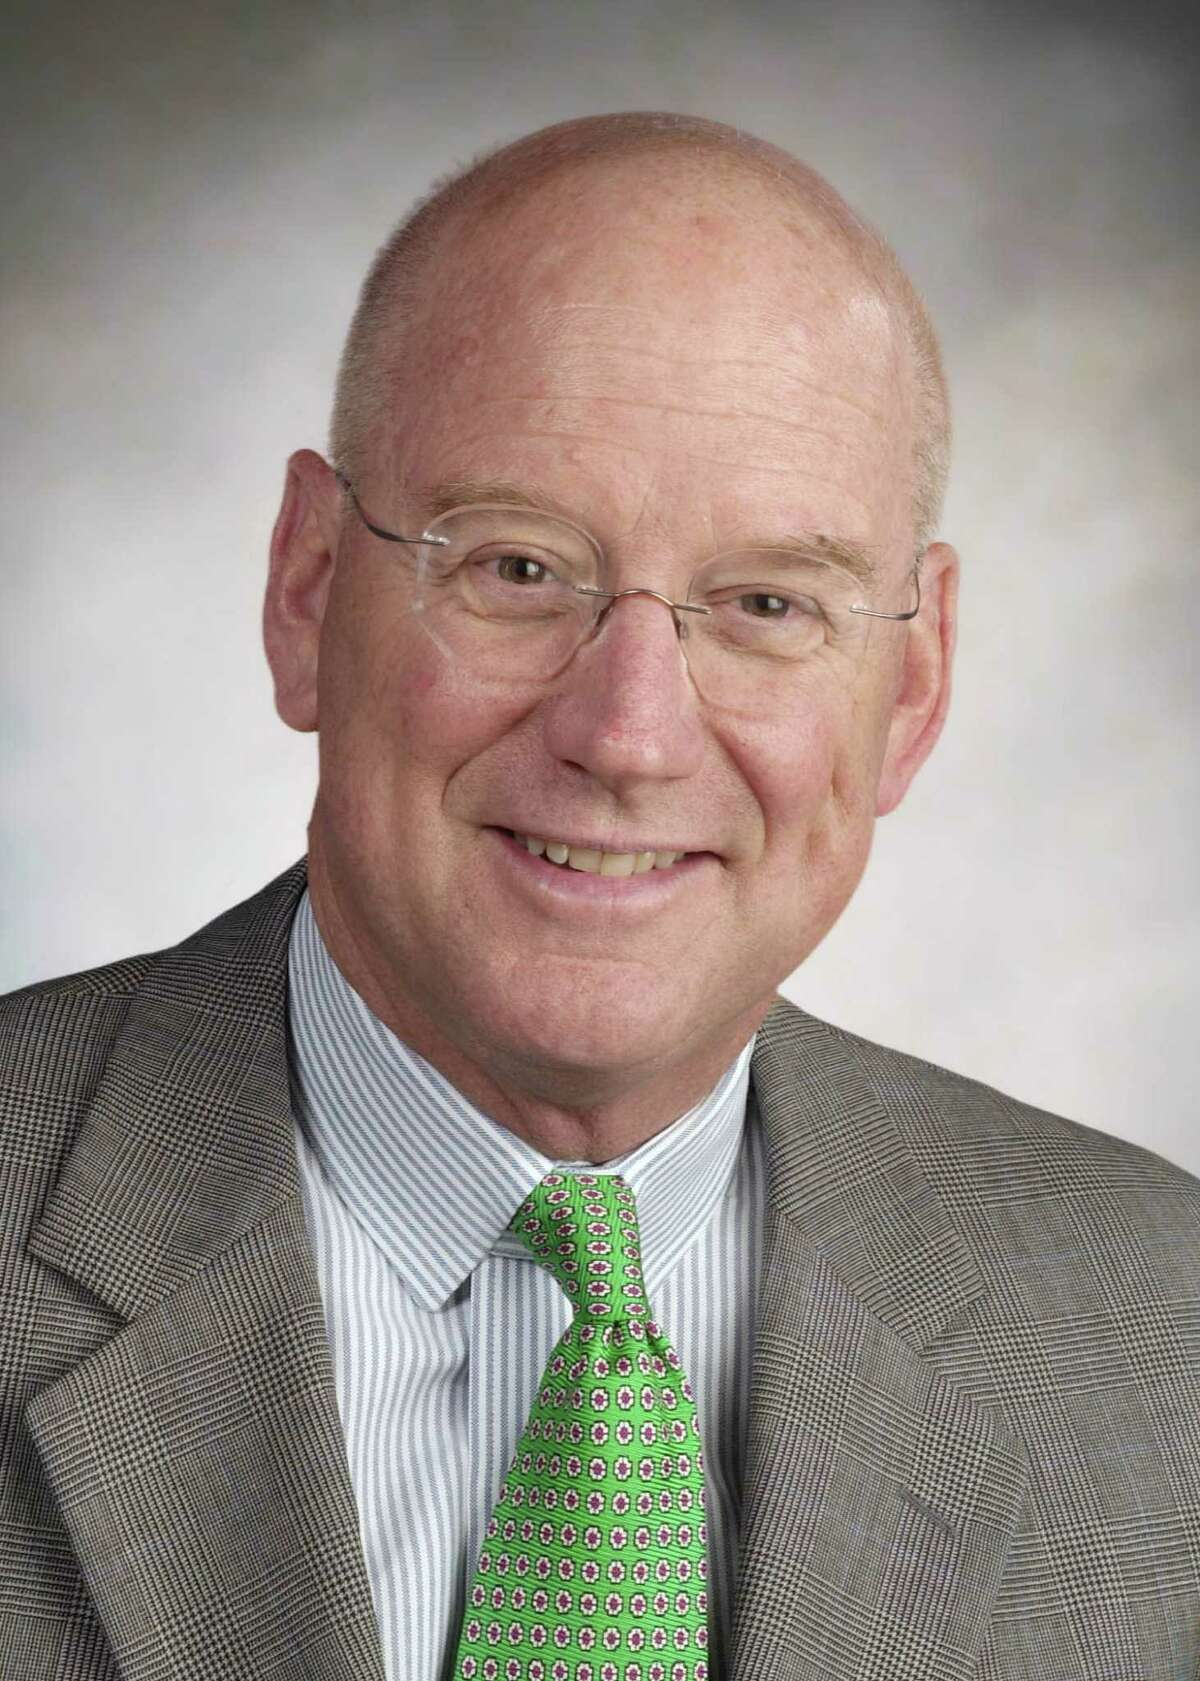 William L. Henrich, M.D., is president of the University of Texas Health Science Center at San Antonio.